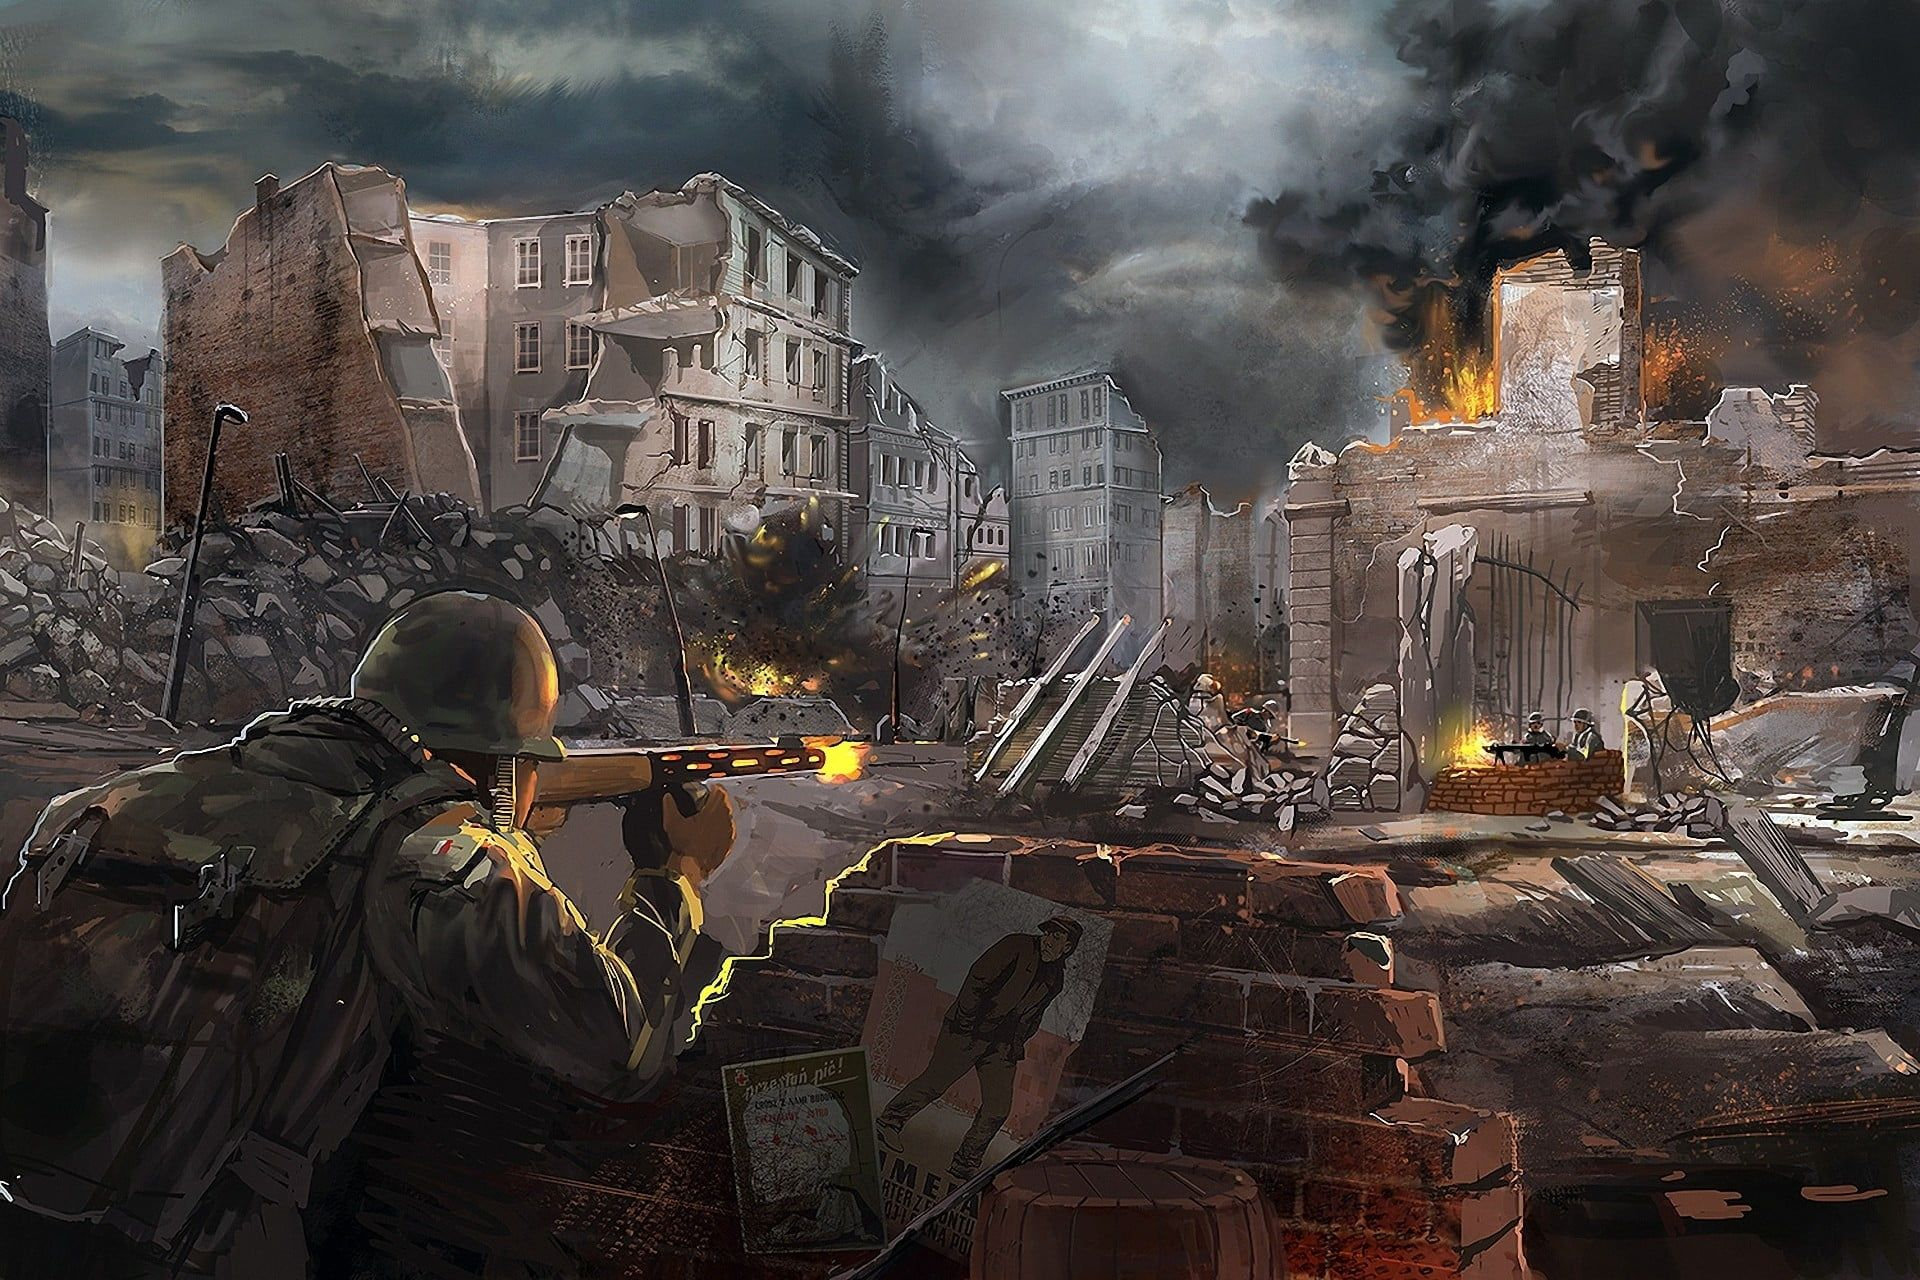 Call of Duty World War 2 Wallpapers - Top Free Call of Duty World